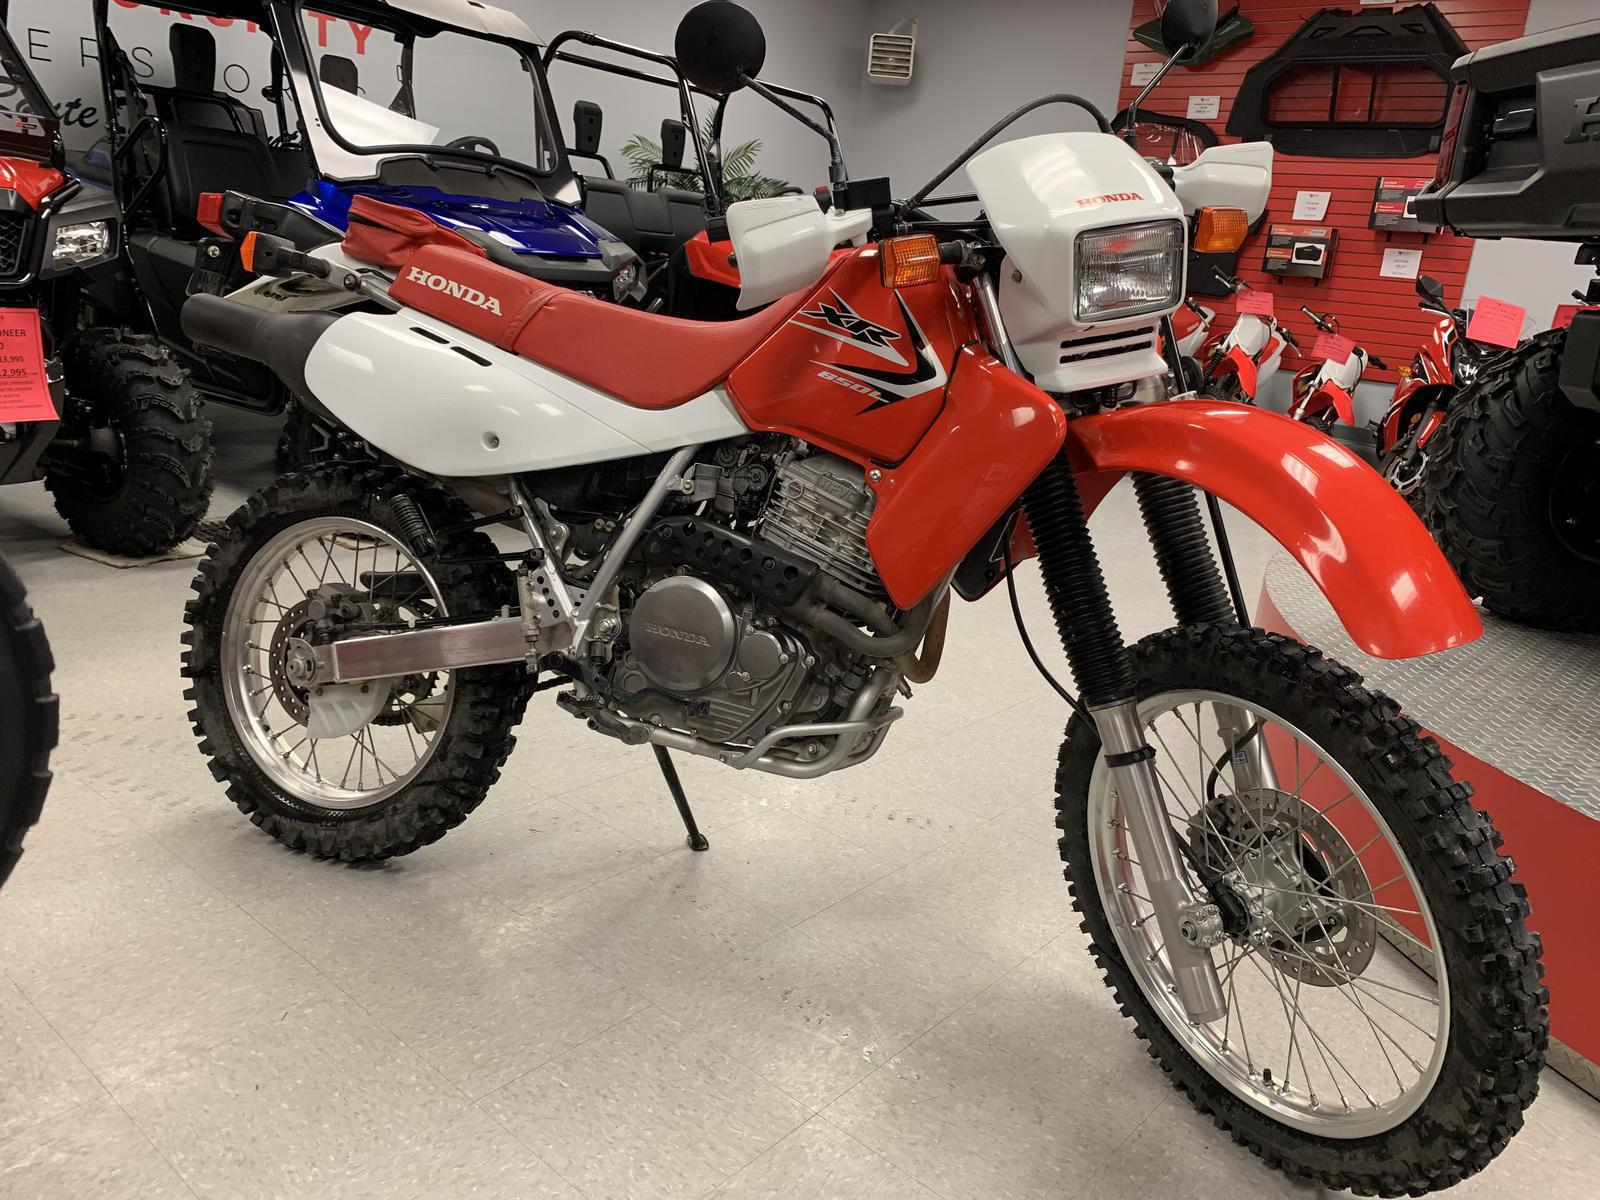 2012 Honda Xr650l For Sale In Stephenville Nl Route 460